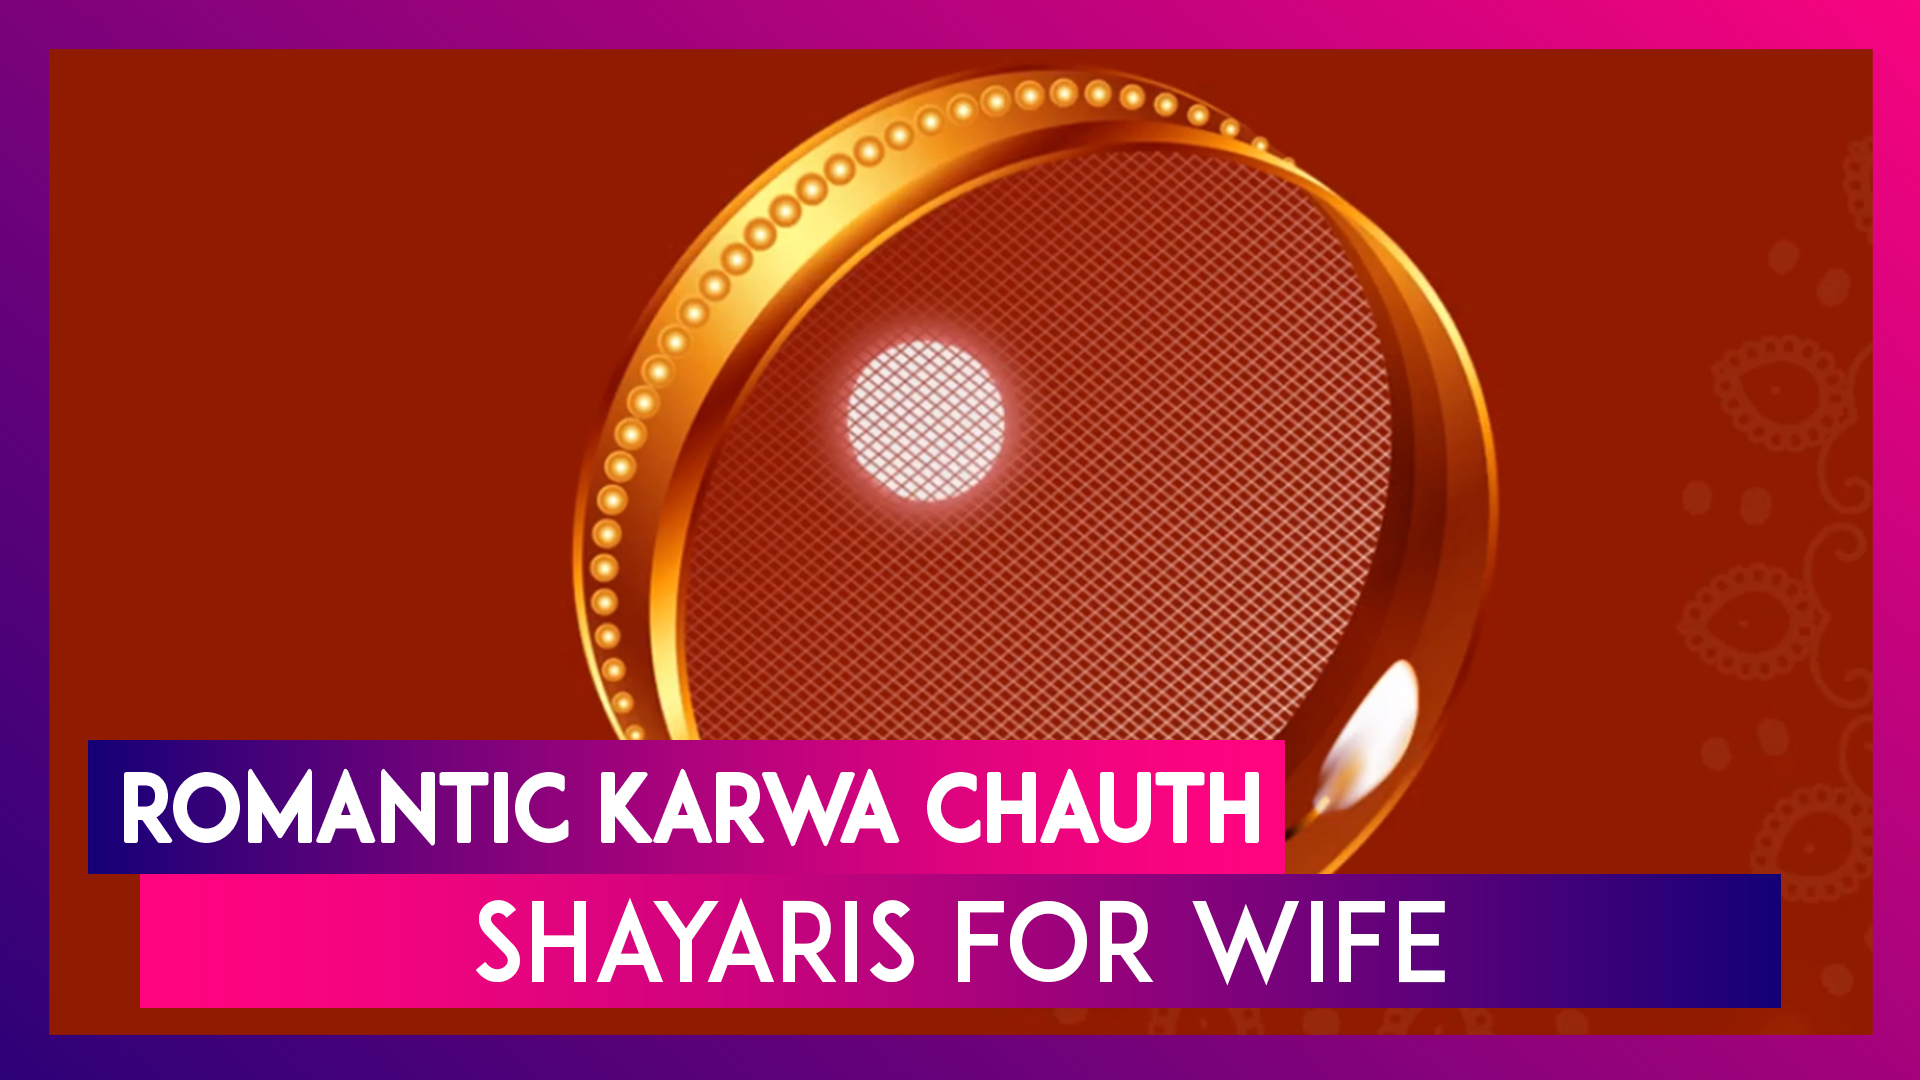 Romantic Karwa Chauth 2019 Shayaris For Wife: Quotes on Love, WhatsApp Messages, SMS and Greetings